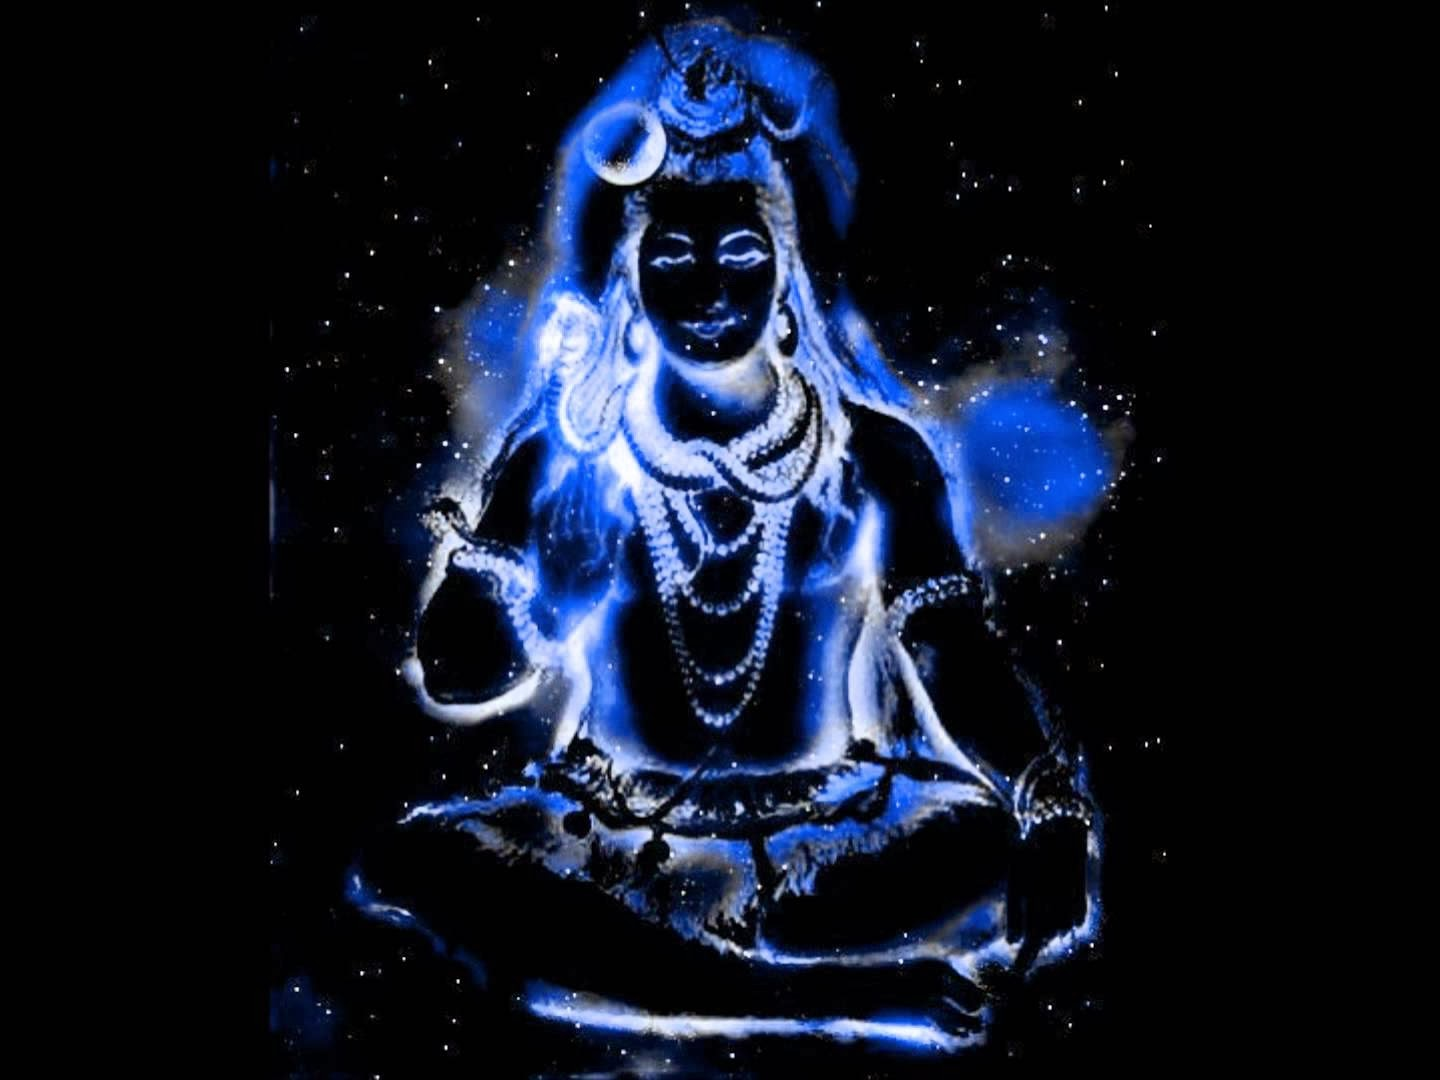 Good Wallpaper Angry Shiva - RW5UOY  Pictures_5658      .jpg